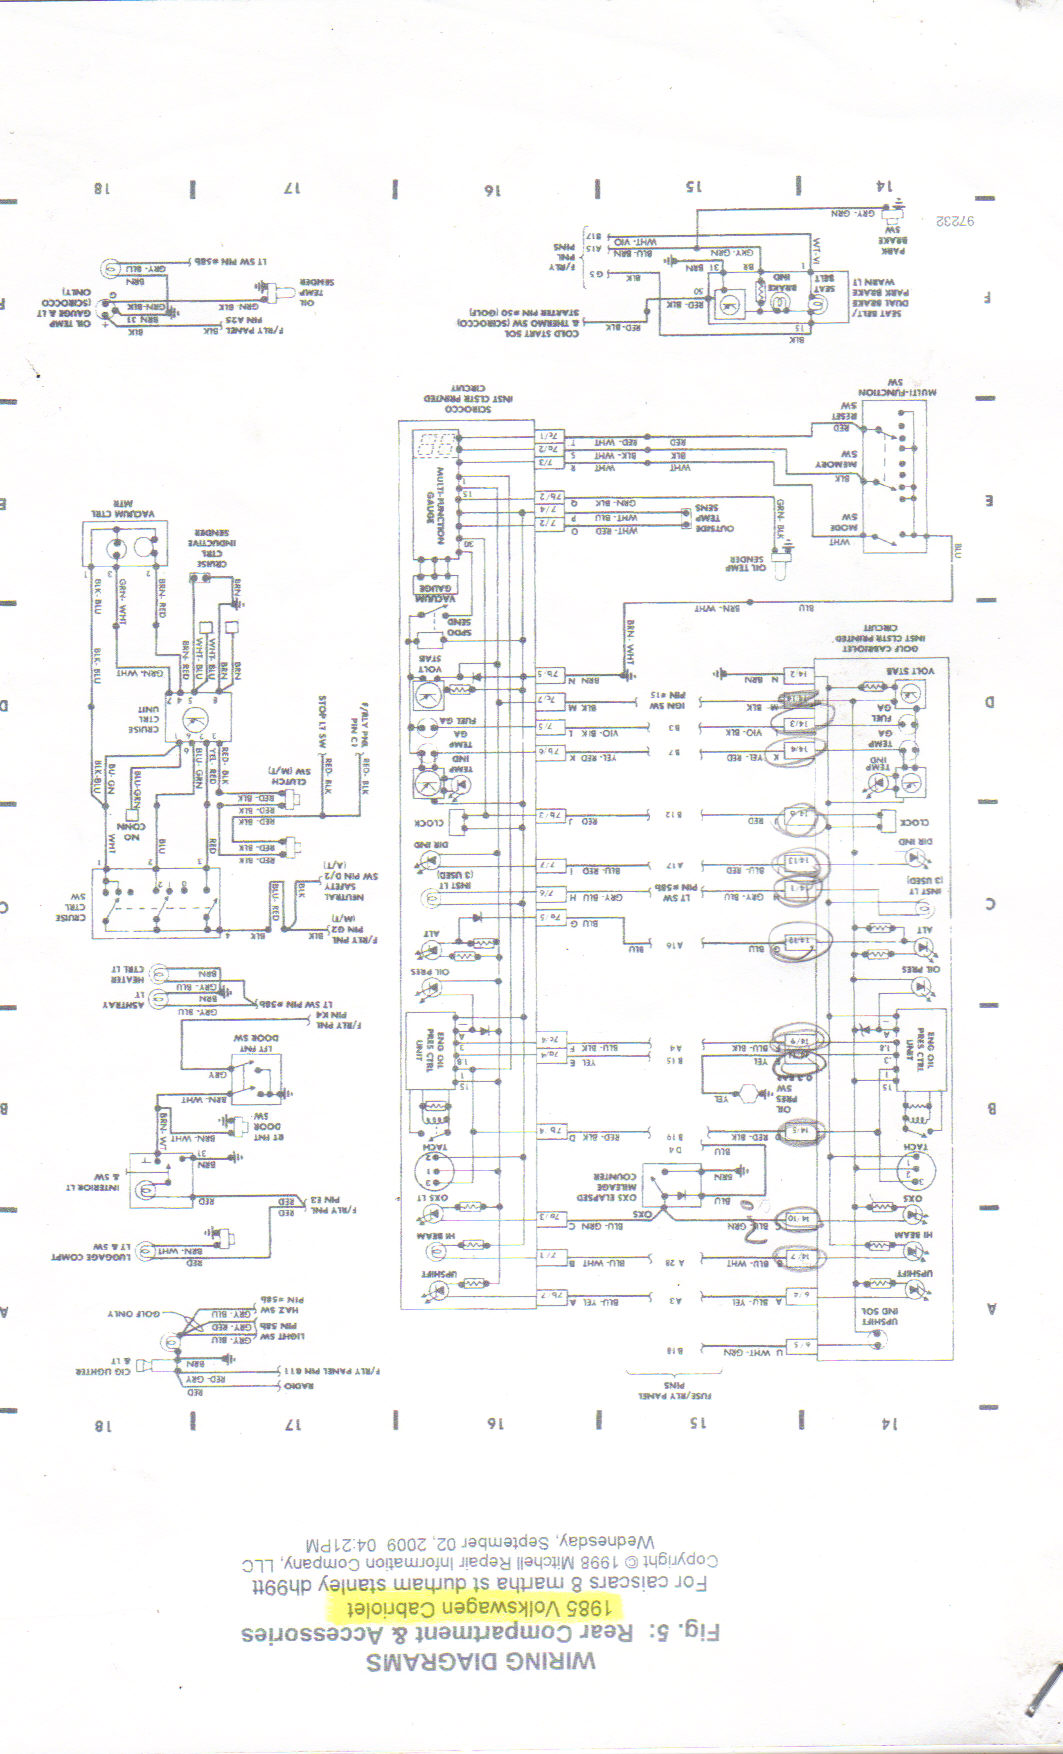 2003 Vw Jetta Wiring Diagram from static-cdn.imageservice.cloud